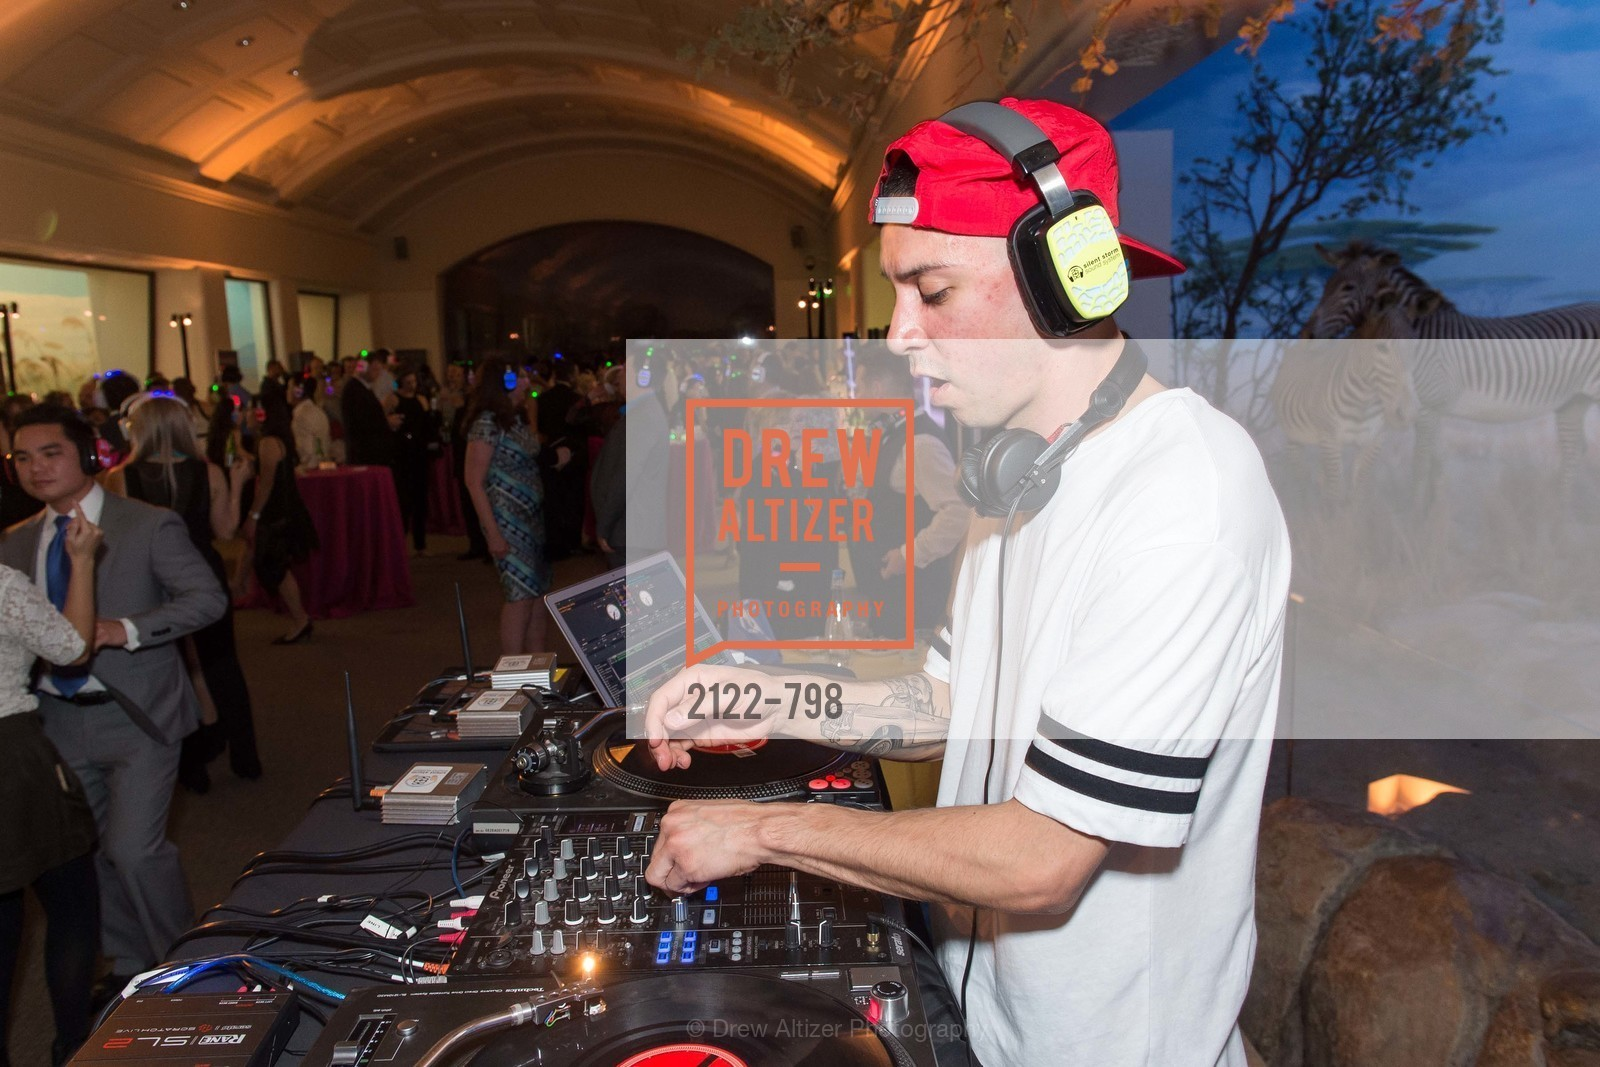 Dj, CALIFORNIA ACADEMY OF SCIENCES - Big Bang Gala 2015, US, April 24th, 2015,Drew Altizer, Drew Altizer Photography, full-service agency, private events, San Francisco photographer, photographer california